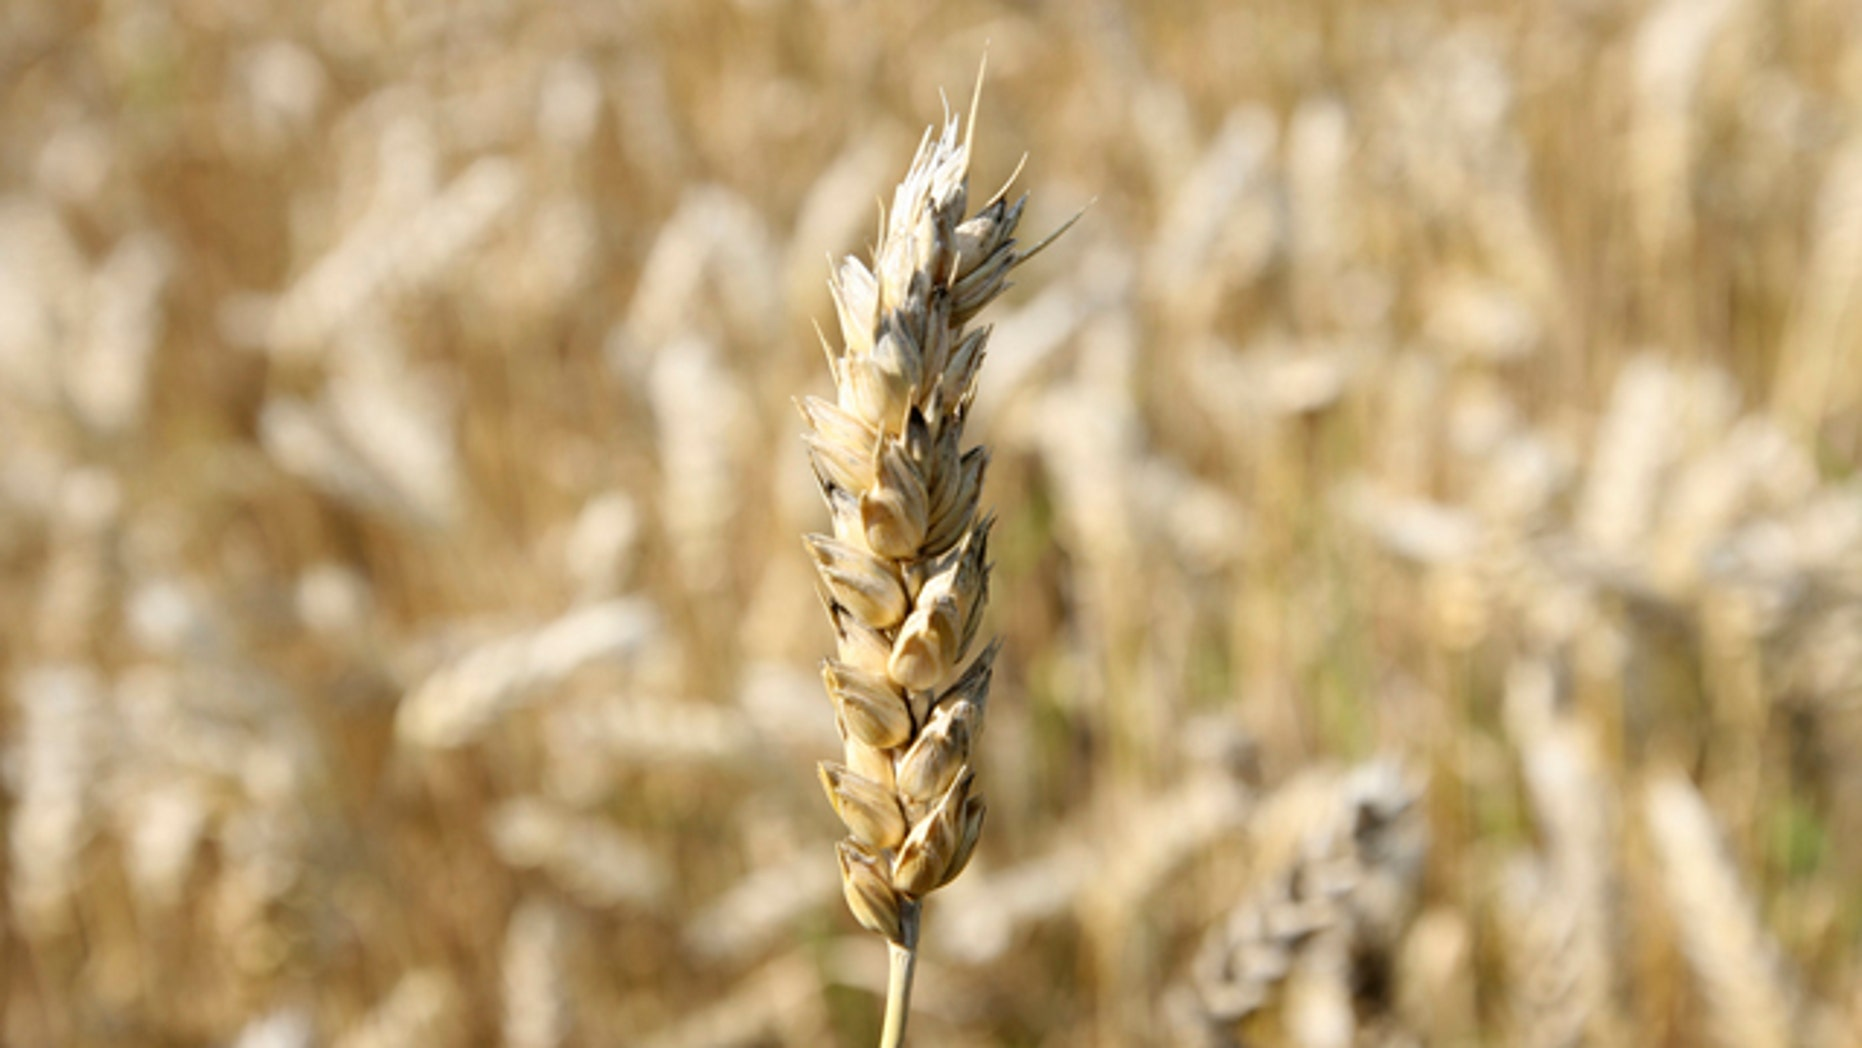 A close up view of a wheat crop, in a field in Acomb, northeast England, Friday, Aug. 27, 2010. British scientists have decoded the genetic sequence of wheat, one of the world's oldest and most important crops, a development they hope could help breed better strains of the global food staple.